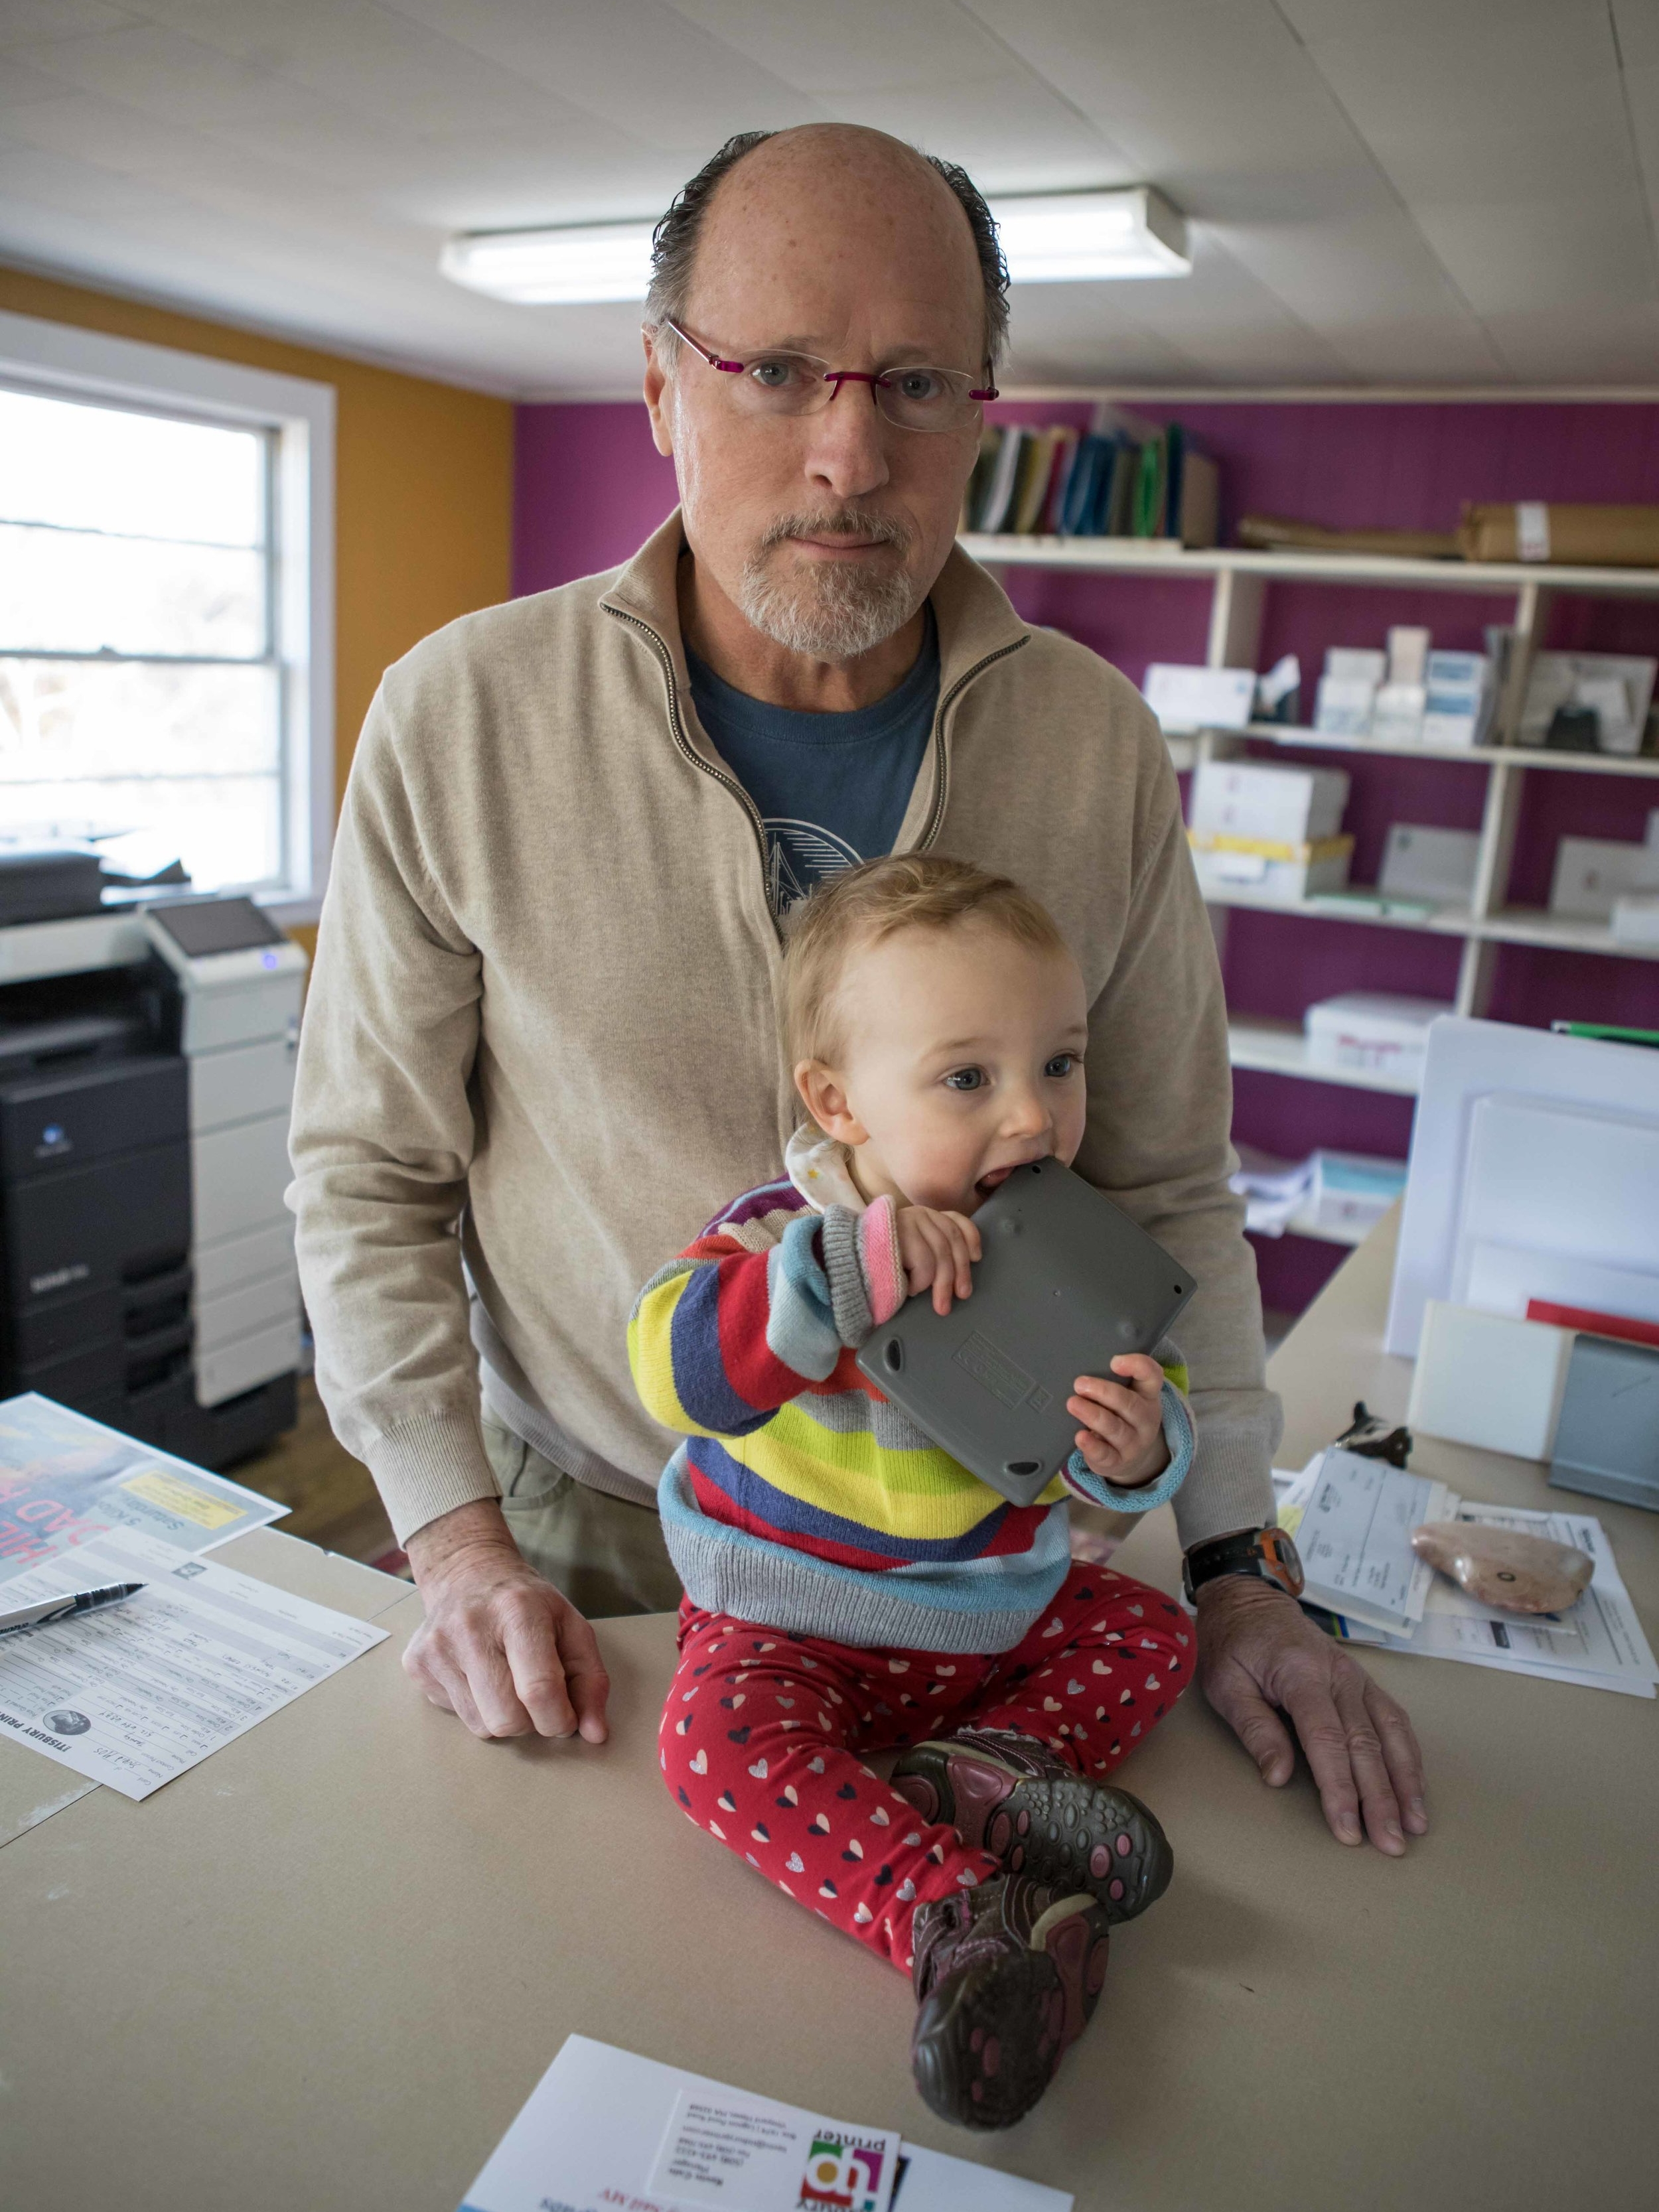 Chris Decker - The Original Tisbury Printer.Owner Chris has been steering the ship since 1978. Over the past 40 years he's watched the world of print evolve dramatically. One thing hasn't changed: his passion for helping customers bring their ideas to life. He loves what is does — however, his granddaughter Lilou looks about ready to take over the family business.Email Chris ➝